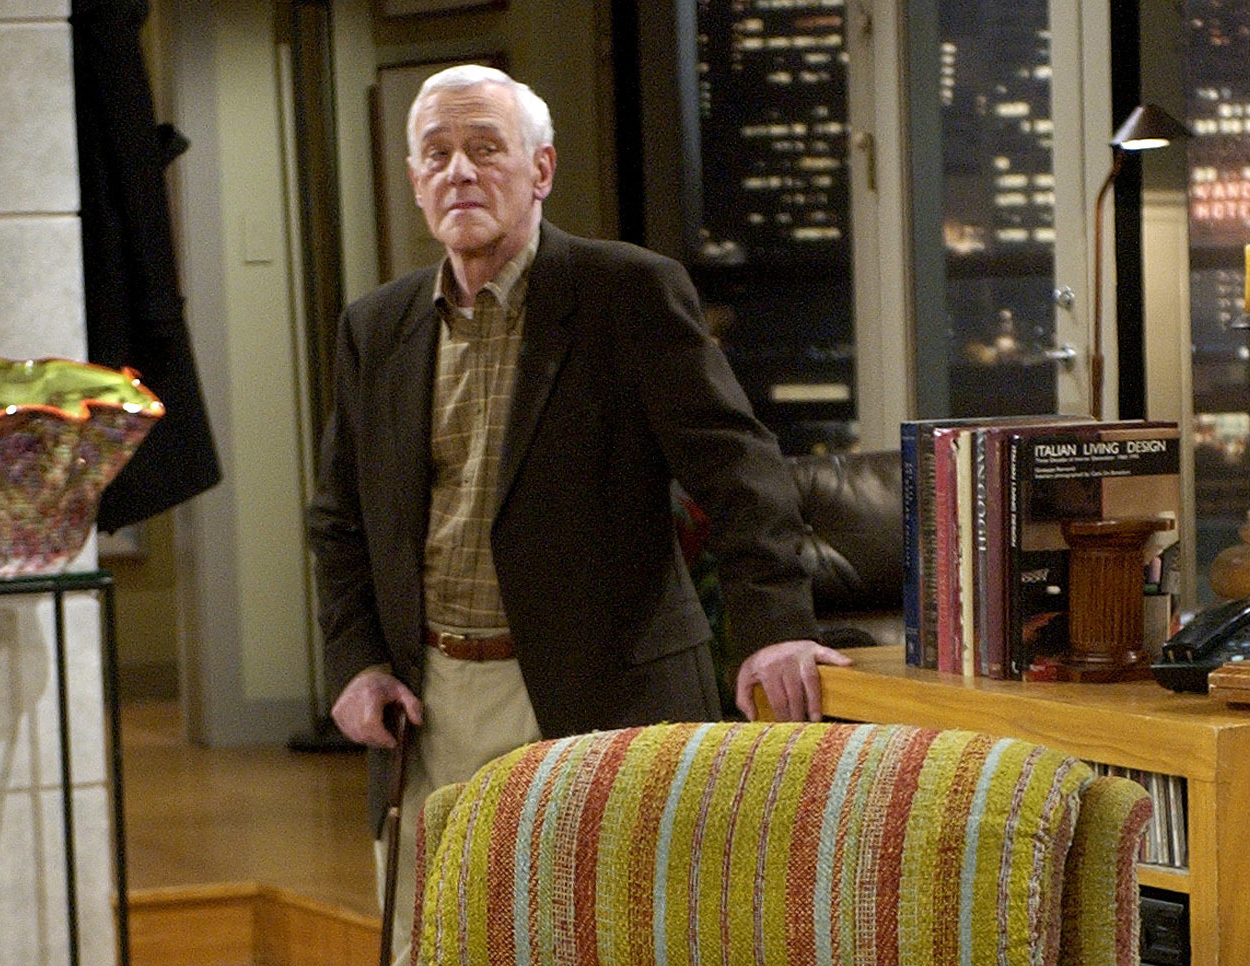 John Mahoney, Frasier & Niles Dad On 'Frasier,' Dies At 77